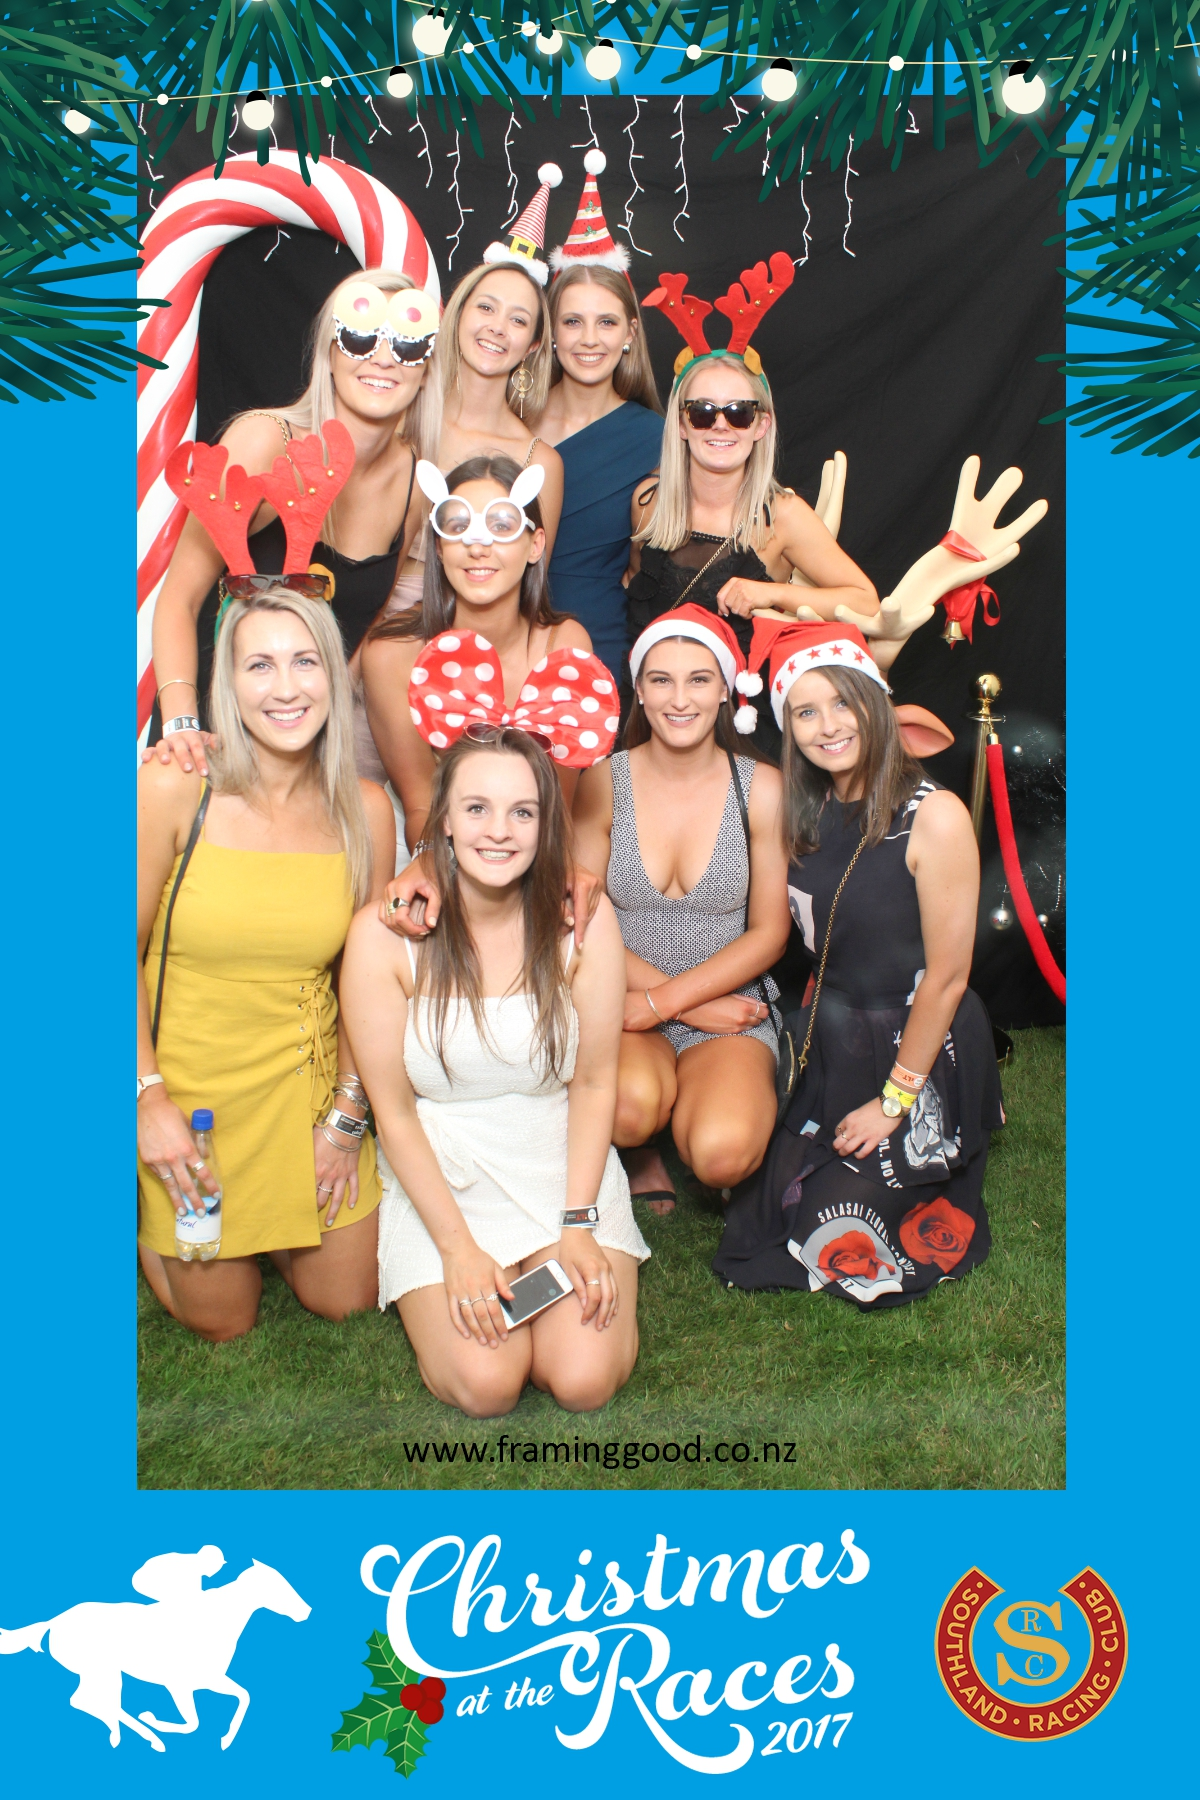 Framing Good Photo Booth_Corporate_Christmas at the Races.jpg